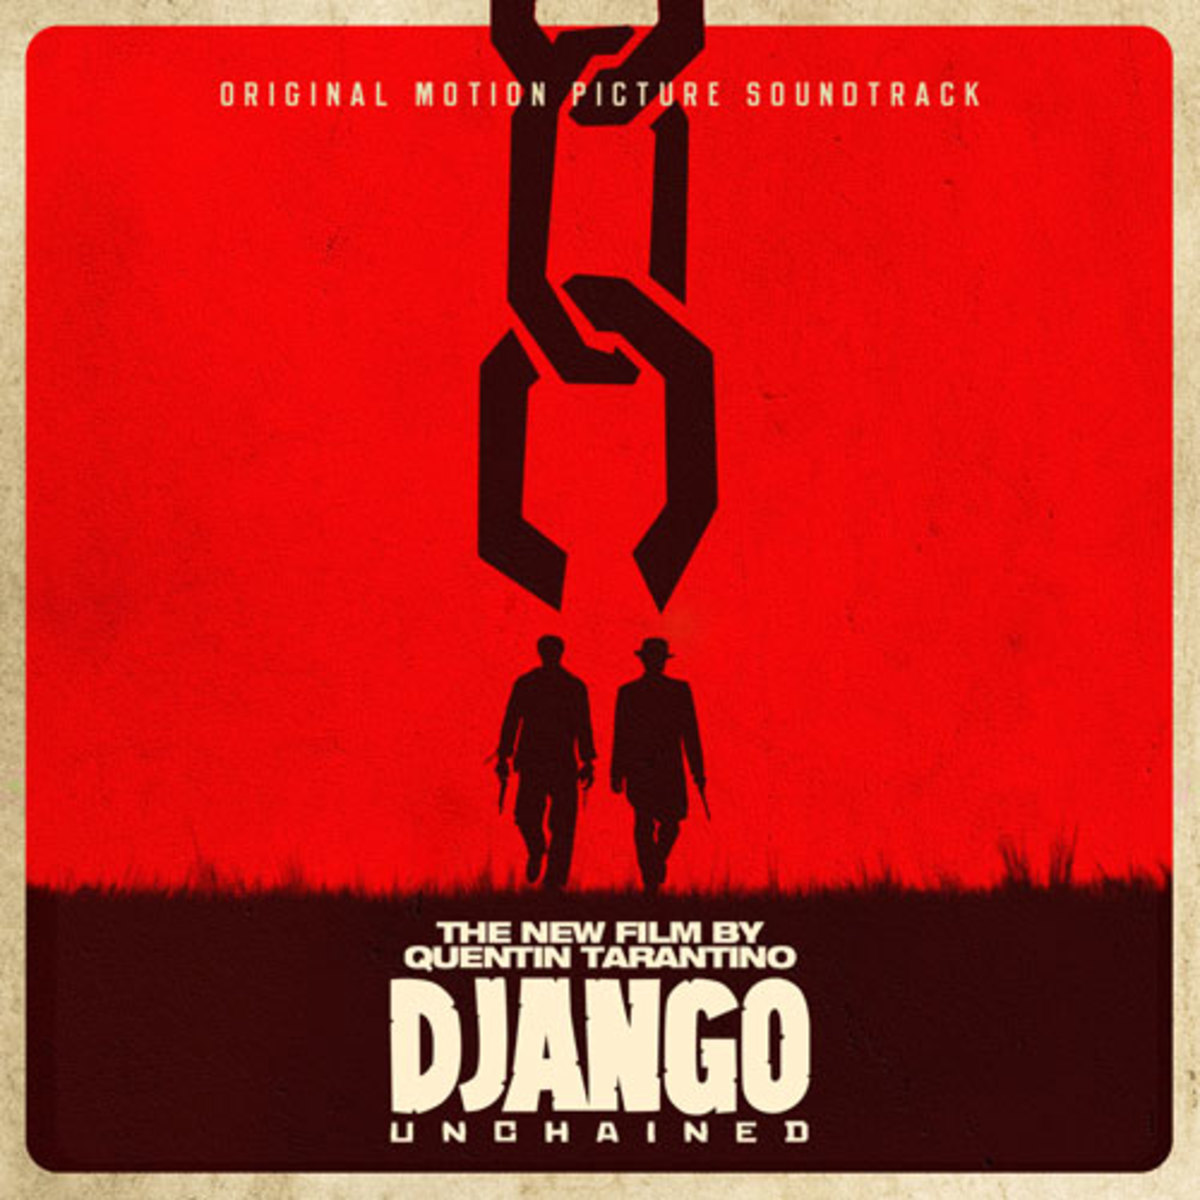 djangounchained-soundtrack.jpg